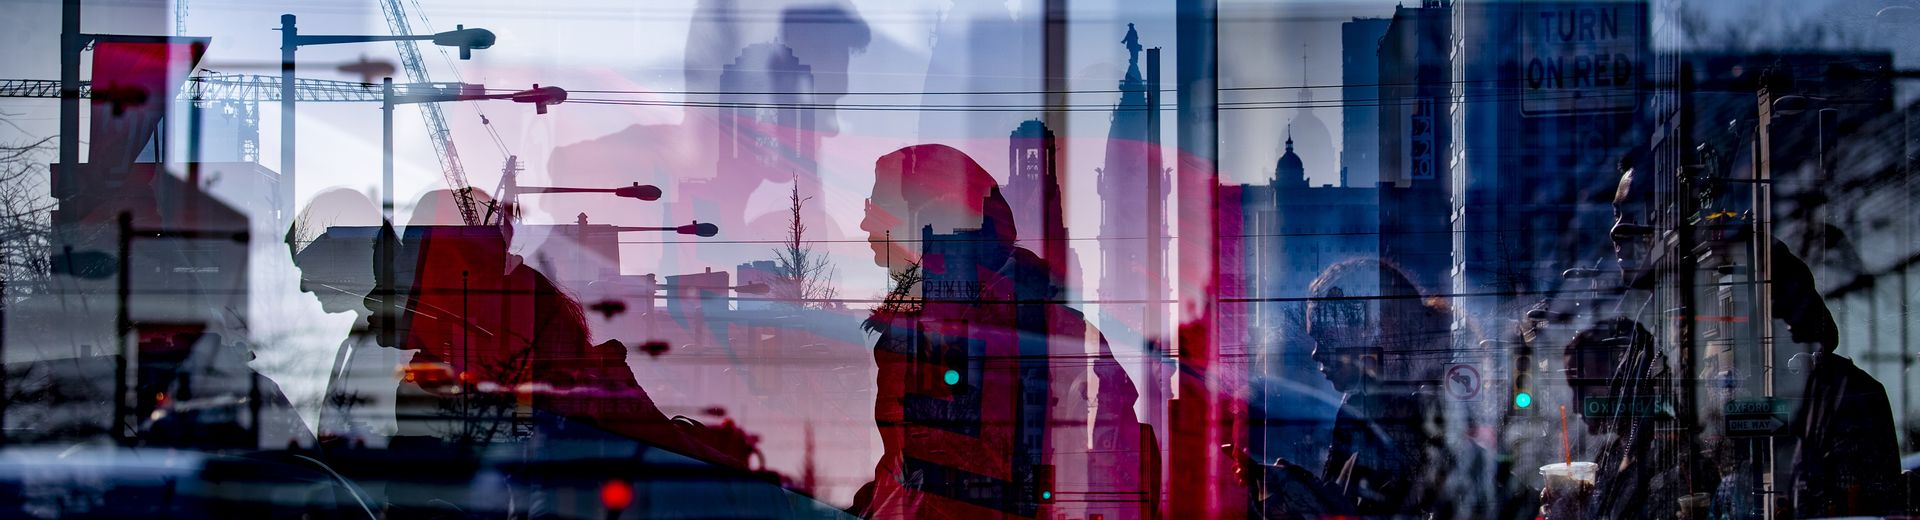 An abstract, layered image of the Temple University campus and students